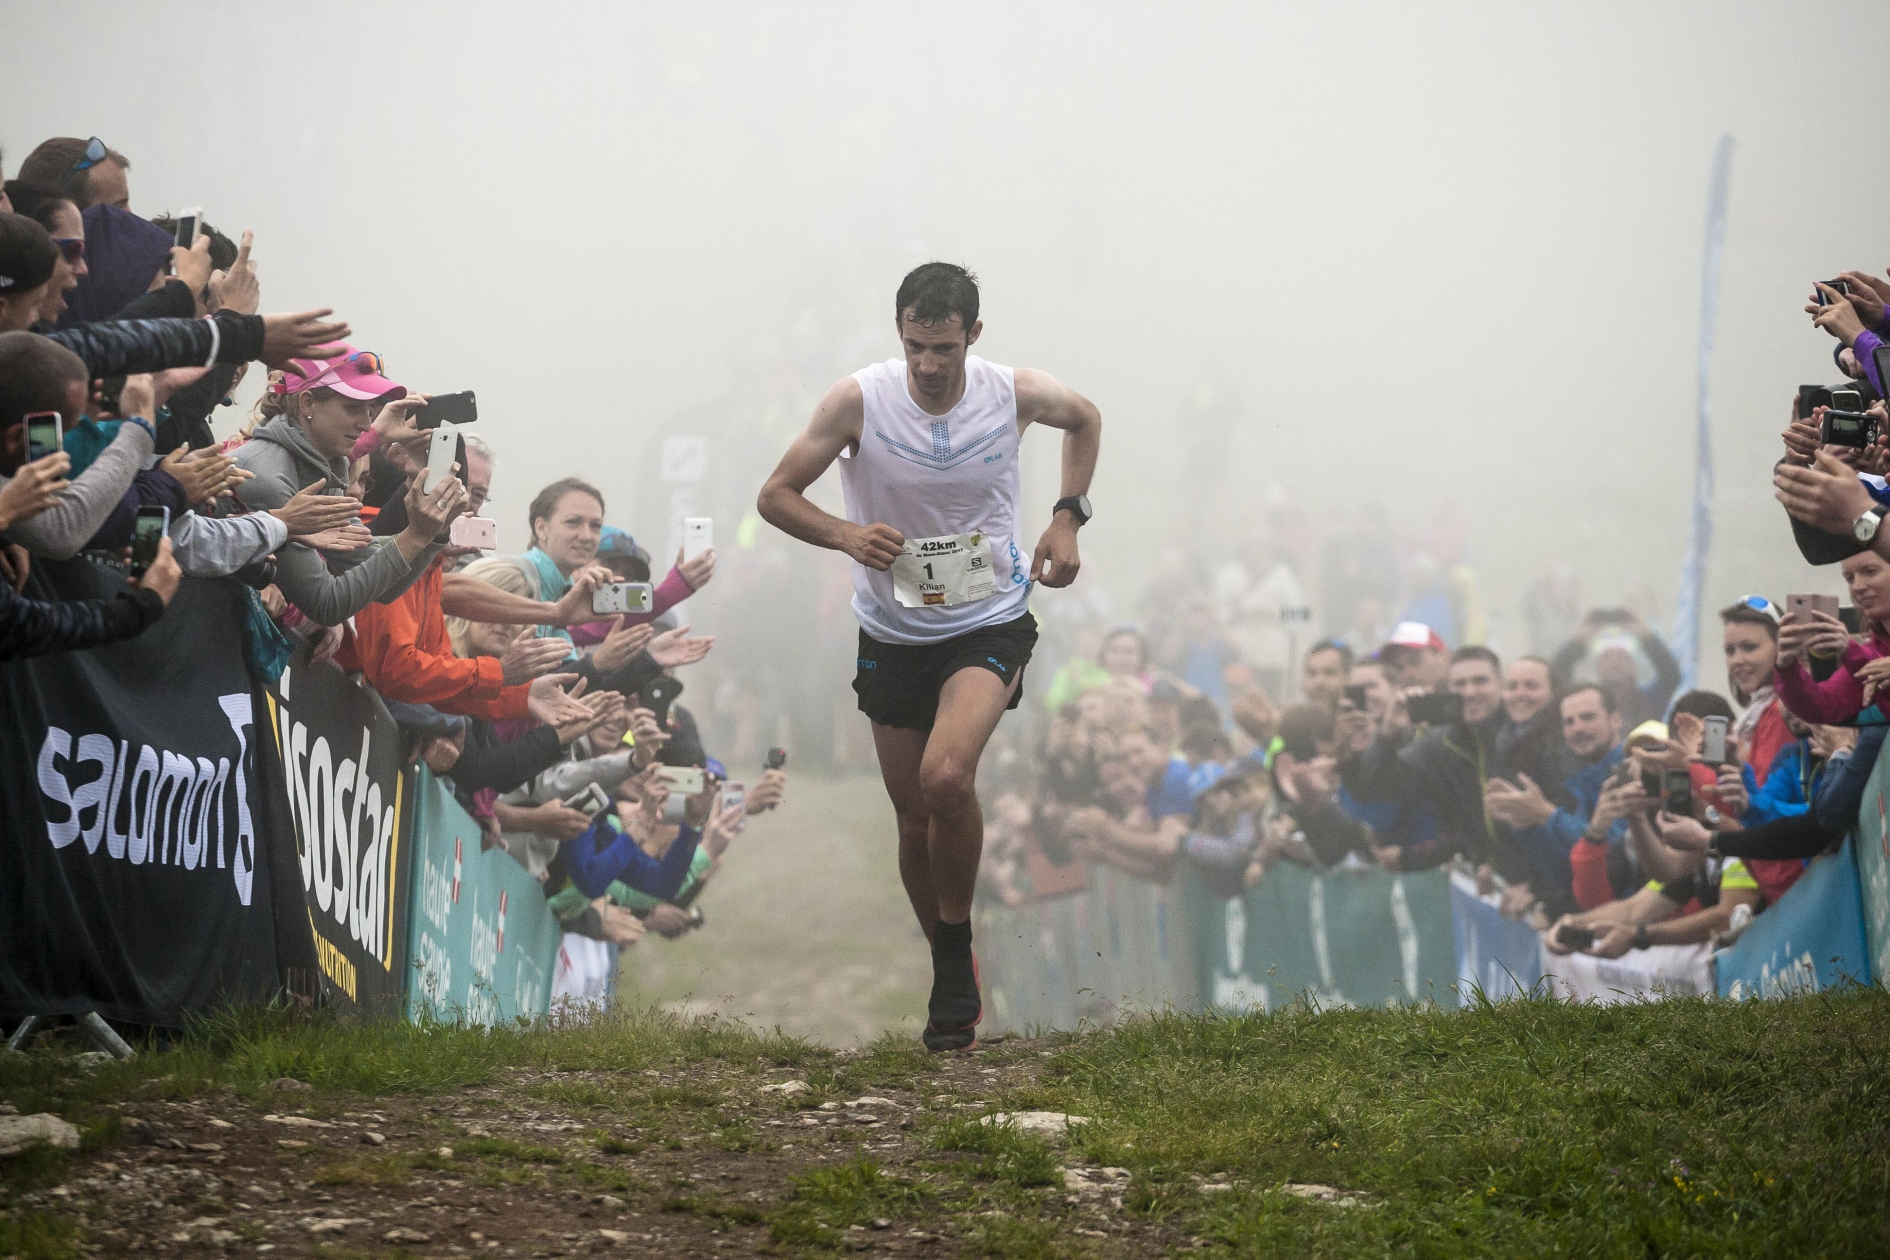 Kilian Jornet returns to competition after the injury